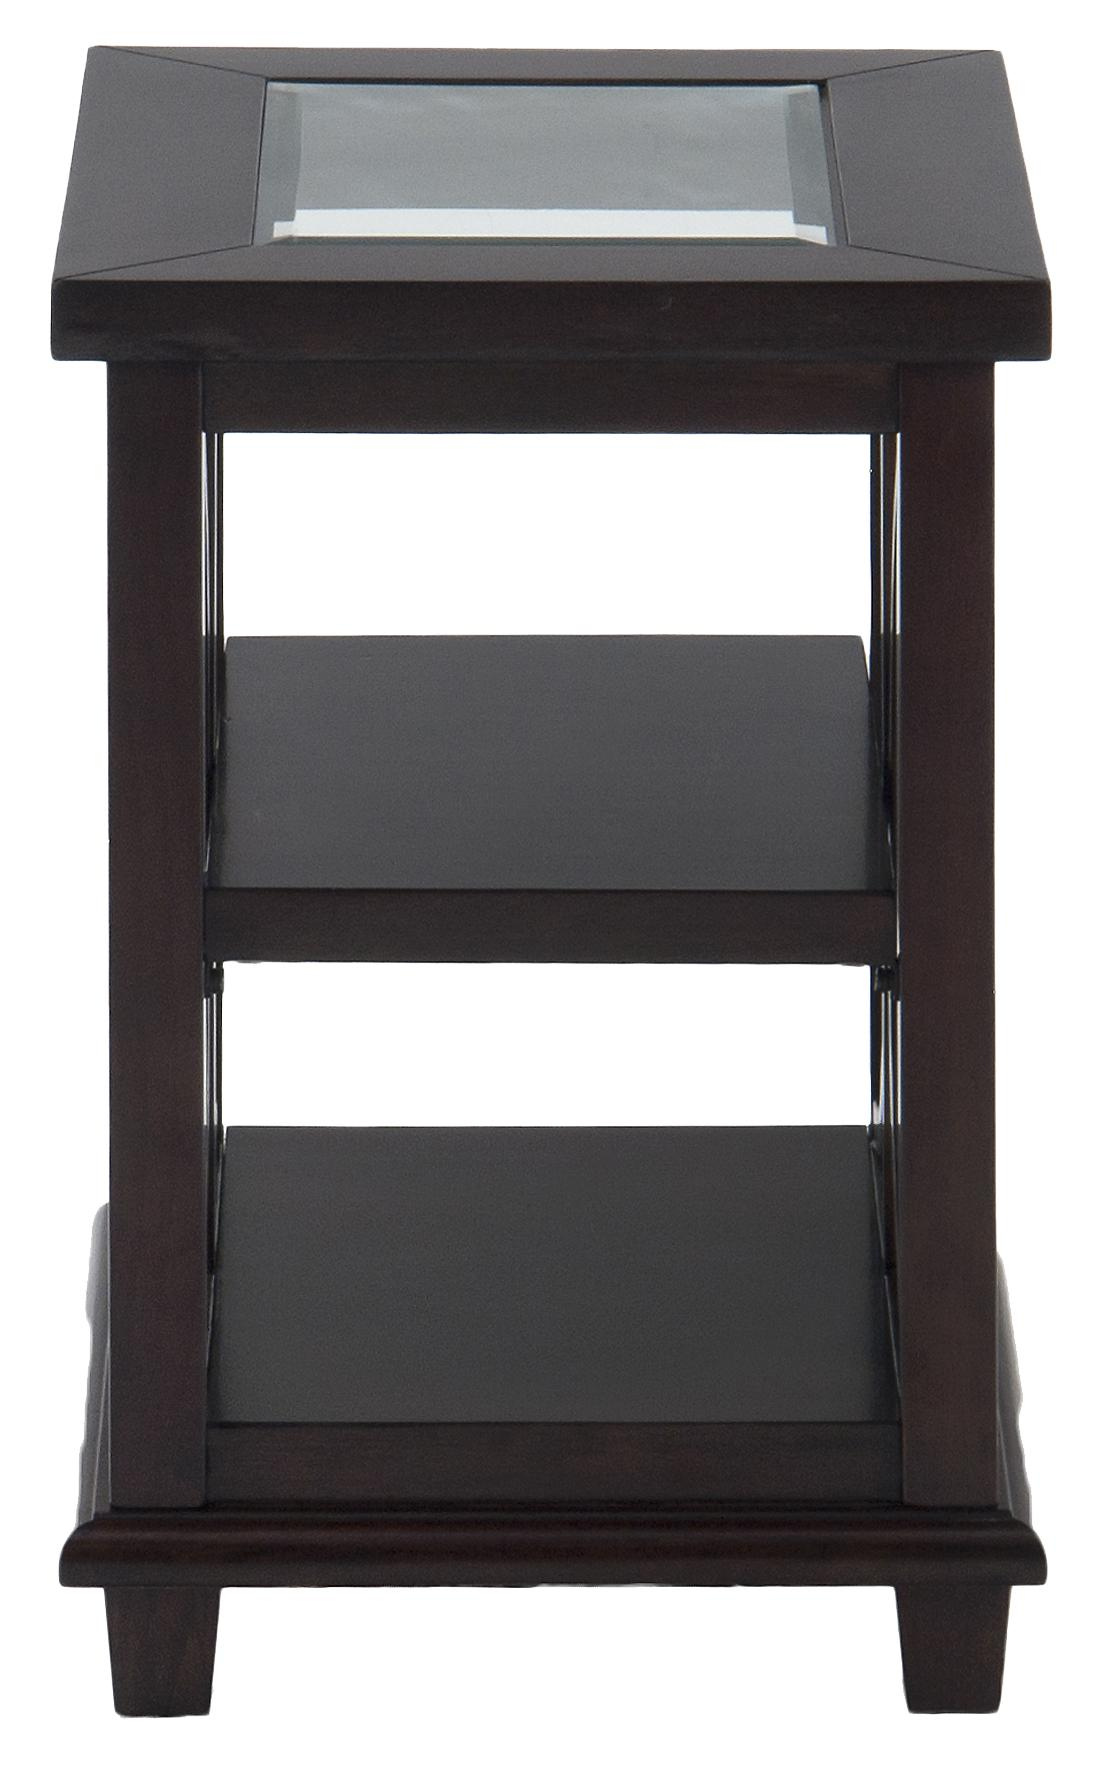 Panama Brown Chairside Table w/ Glass Top by Jofran at Zak's Home